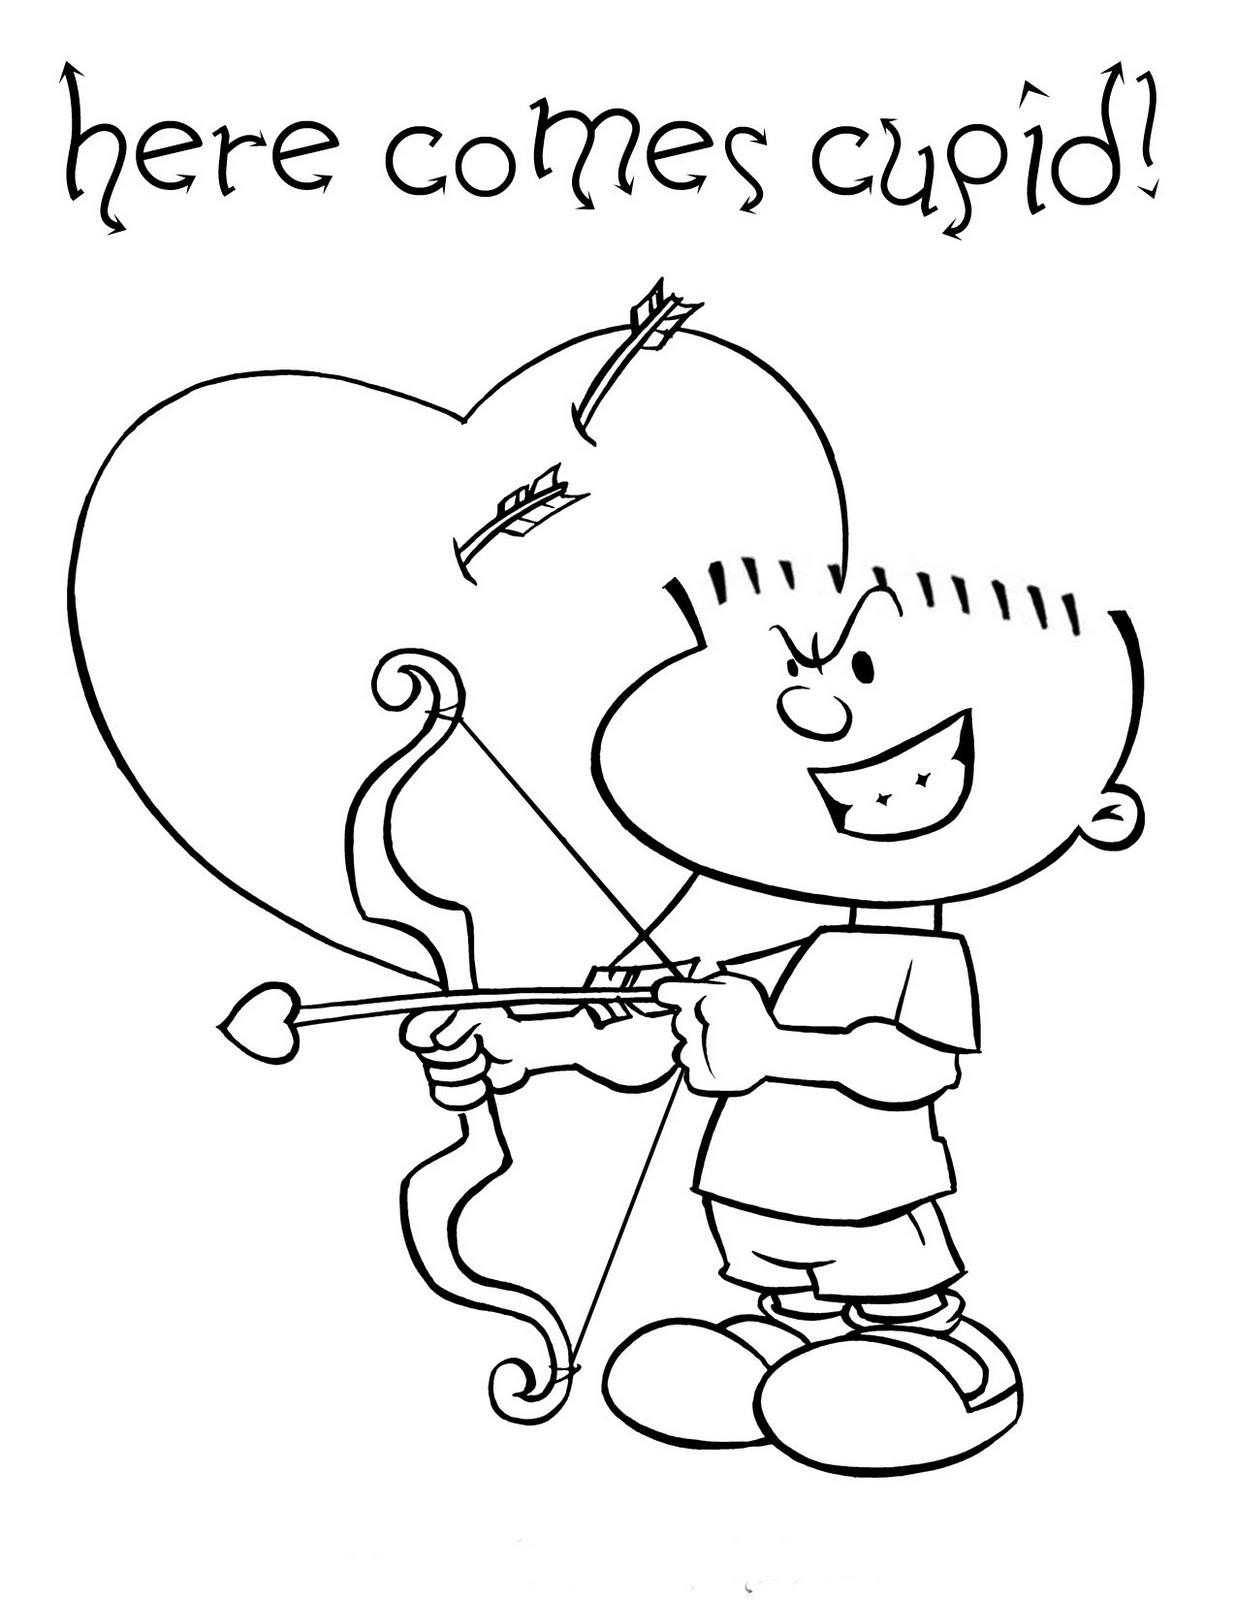 Valentine Coloring Pages & Activities Printable Puzzles - printable valentines coloring pages